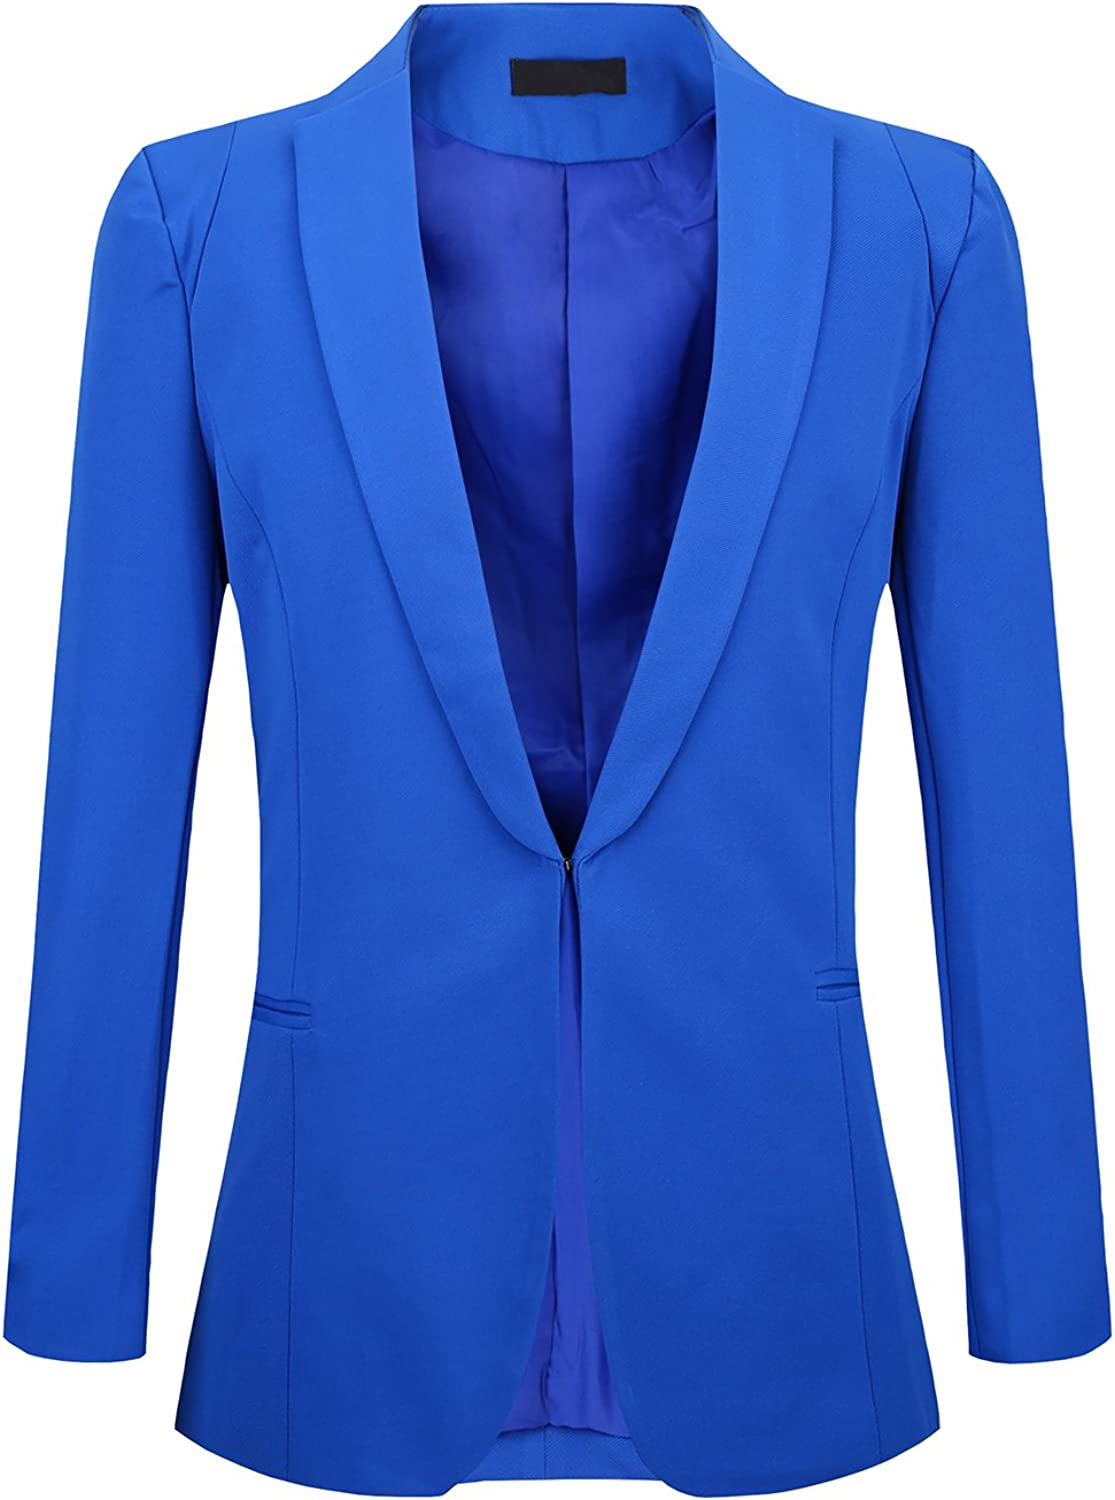 JHVYF Women's Casual Basic Work Jacket Open Front Office Solid Color Blazer Suit